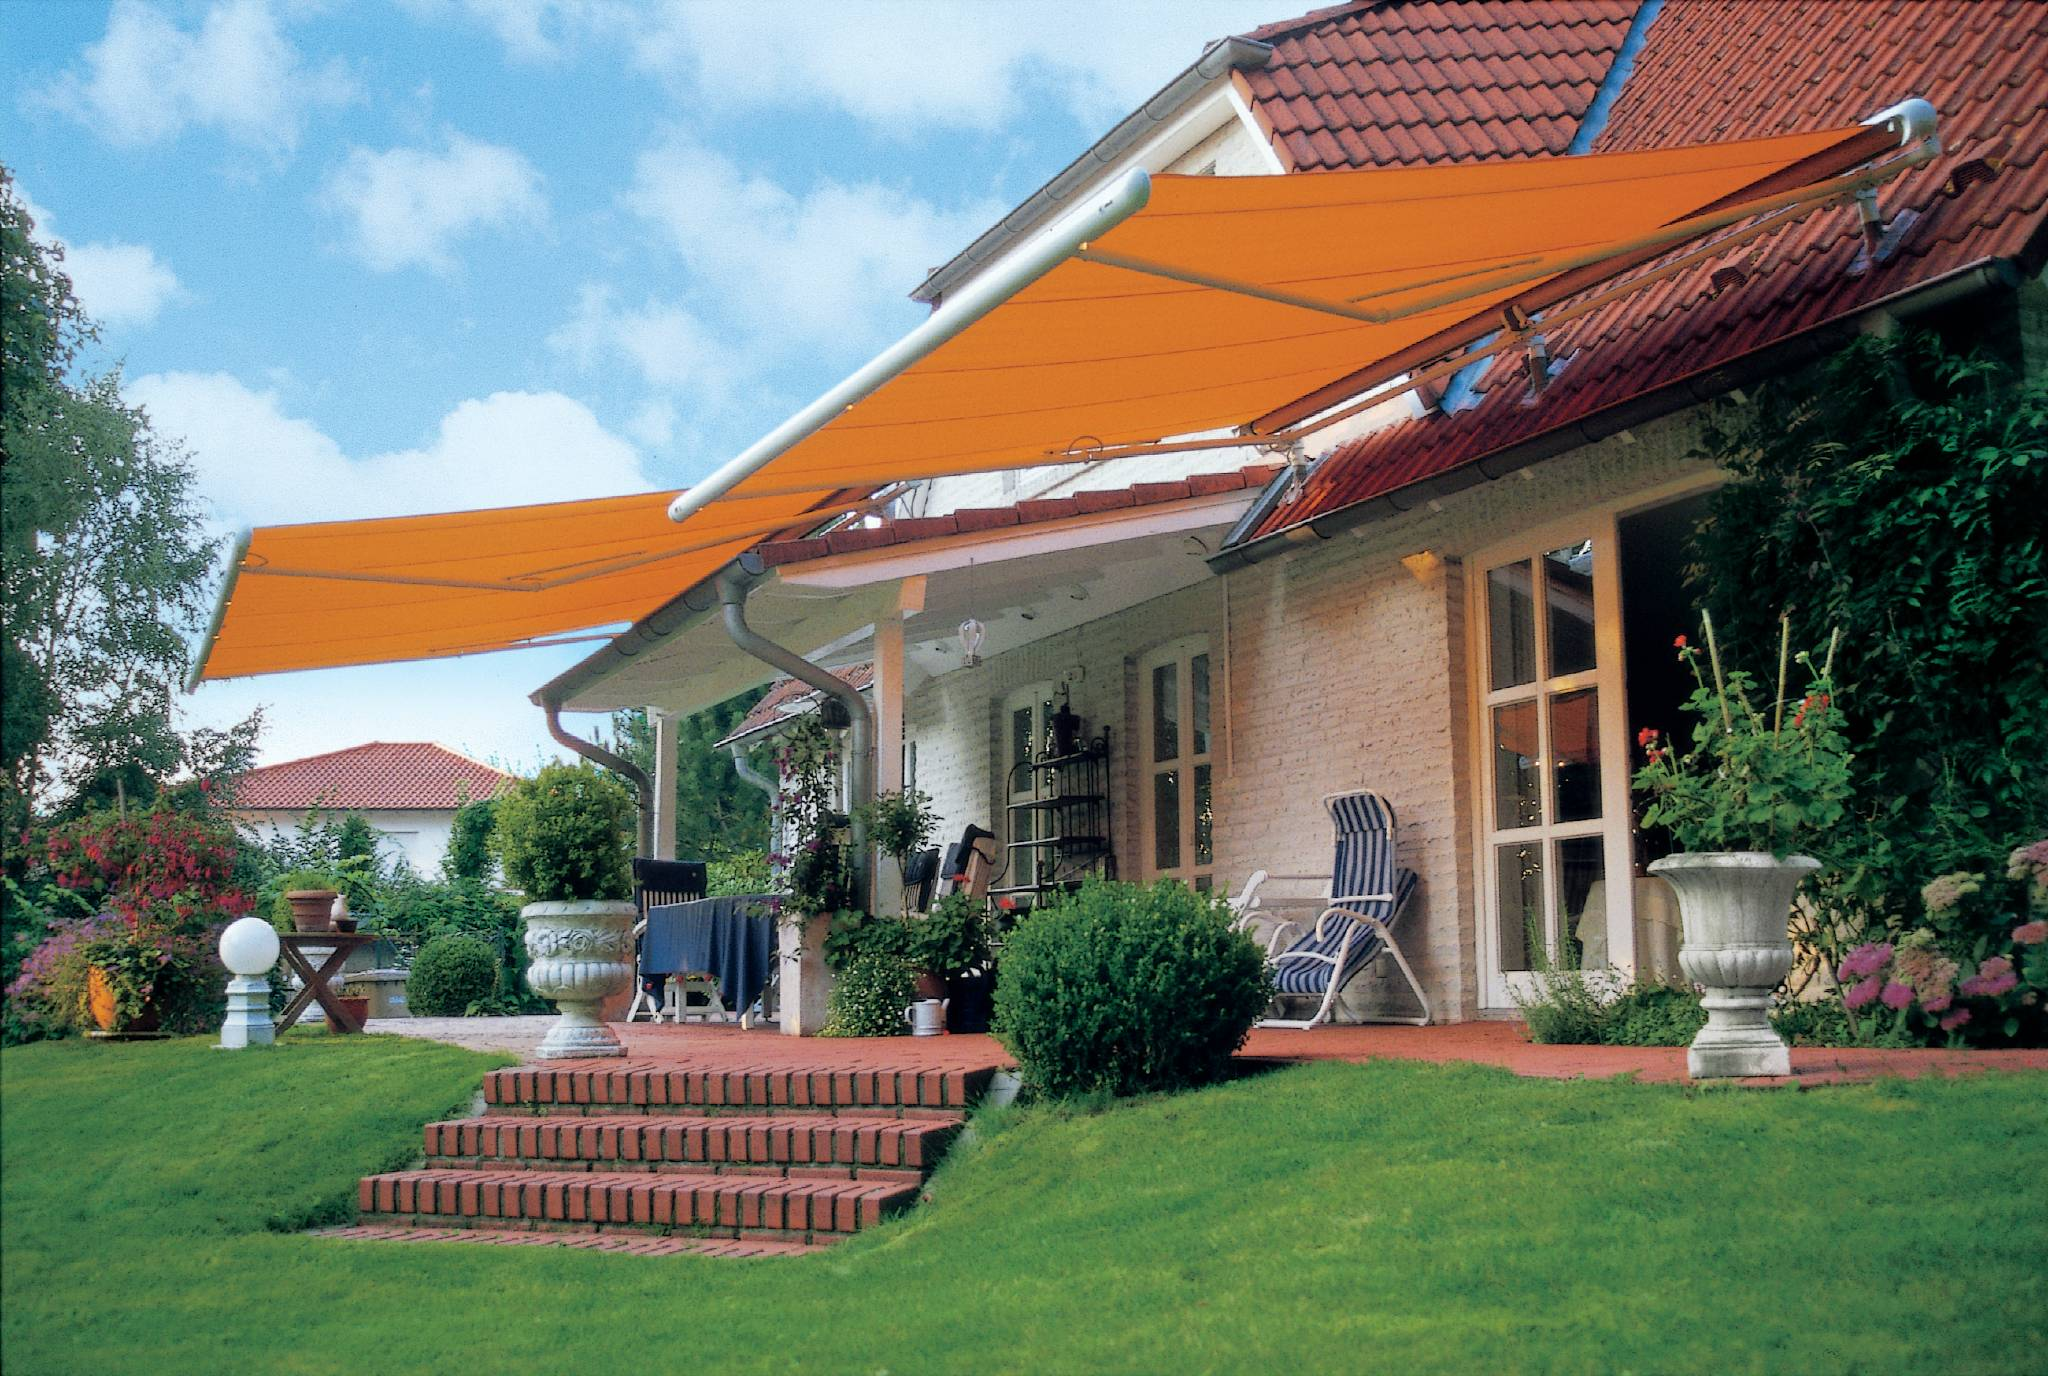 Inspiration - Samson Awnings